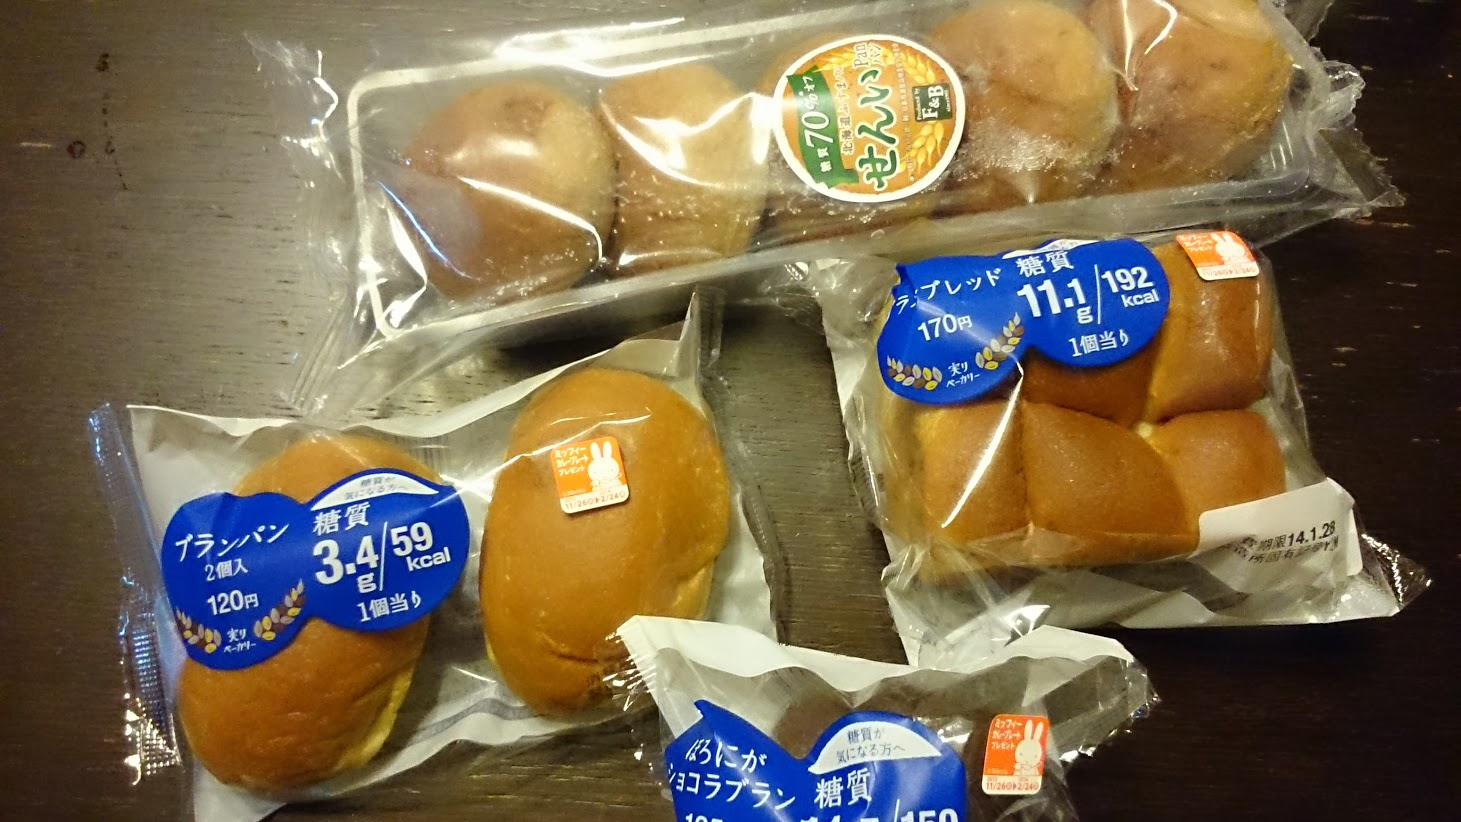 Japanese low carb bread galore!